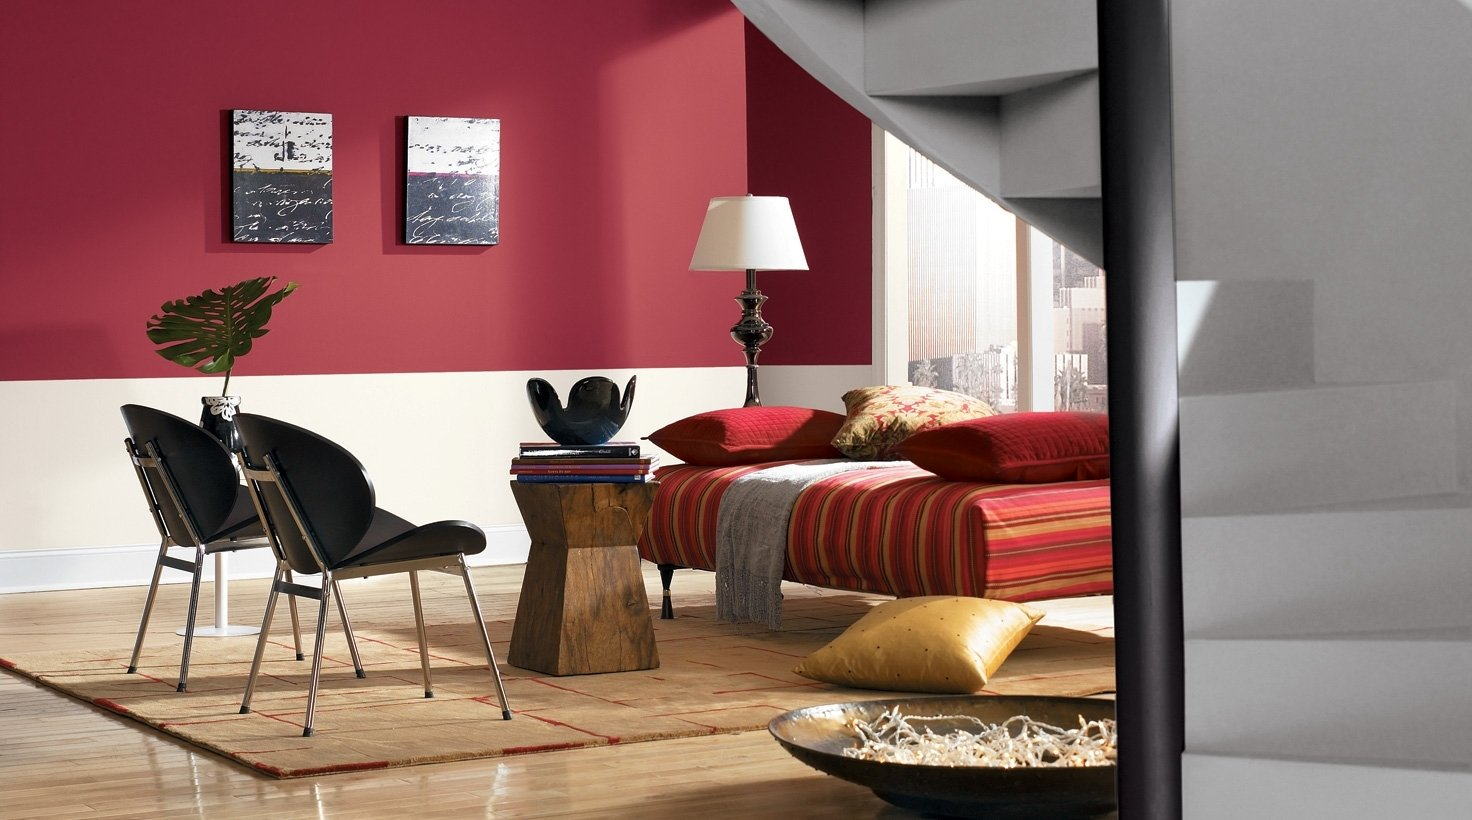 10 Most Popular Living Room Paint Colors Ideas living room paint color ideas inspiration gallery sherwin williams 19 2021